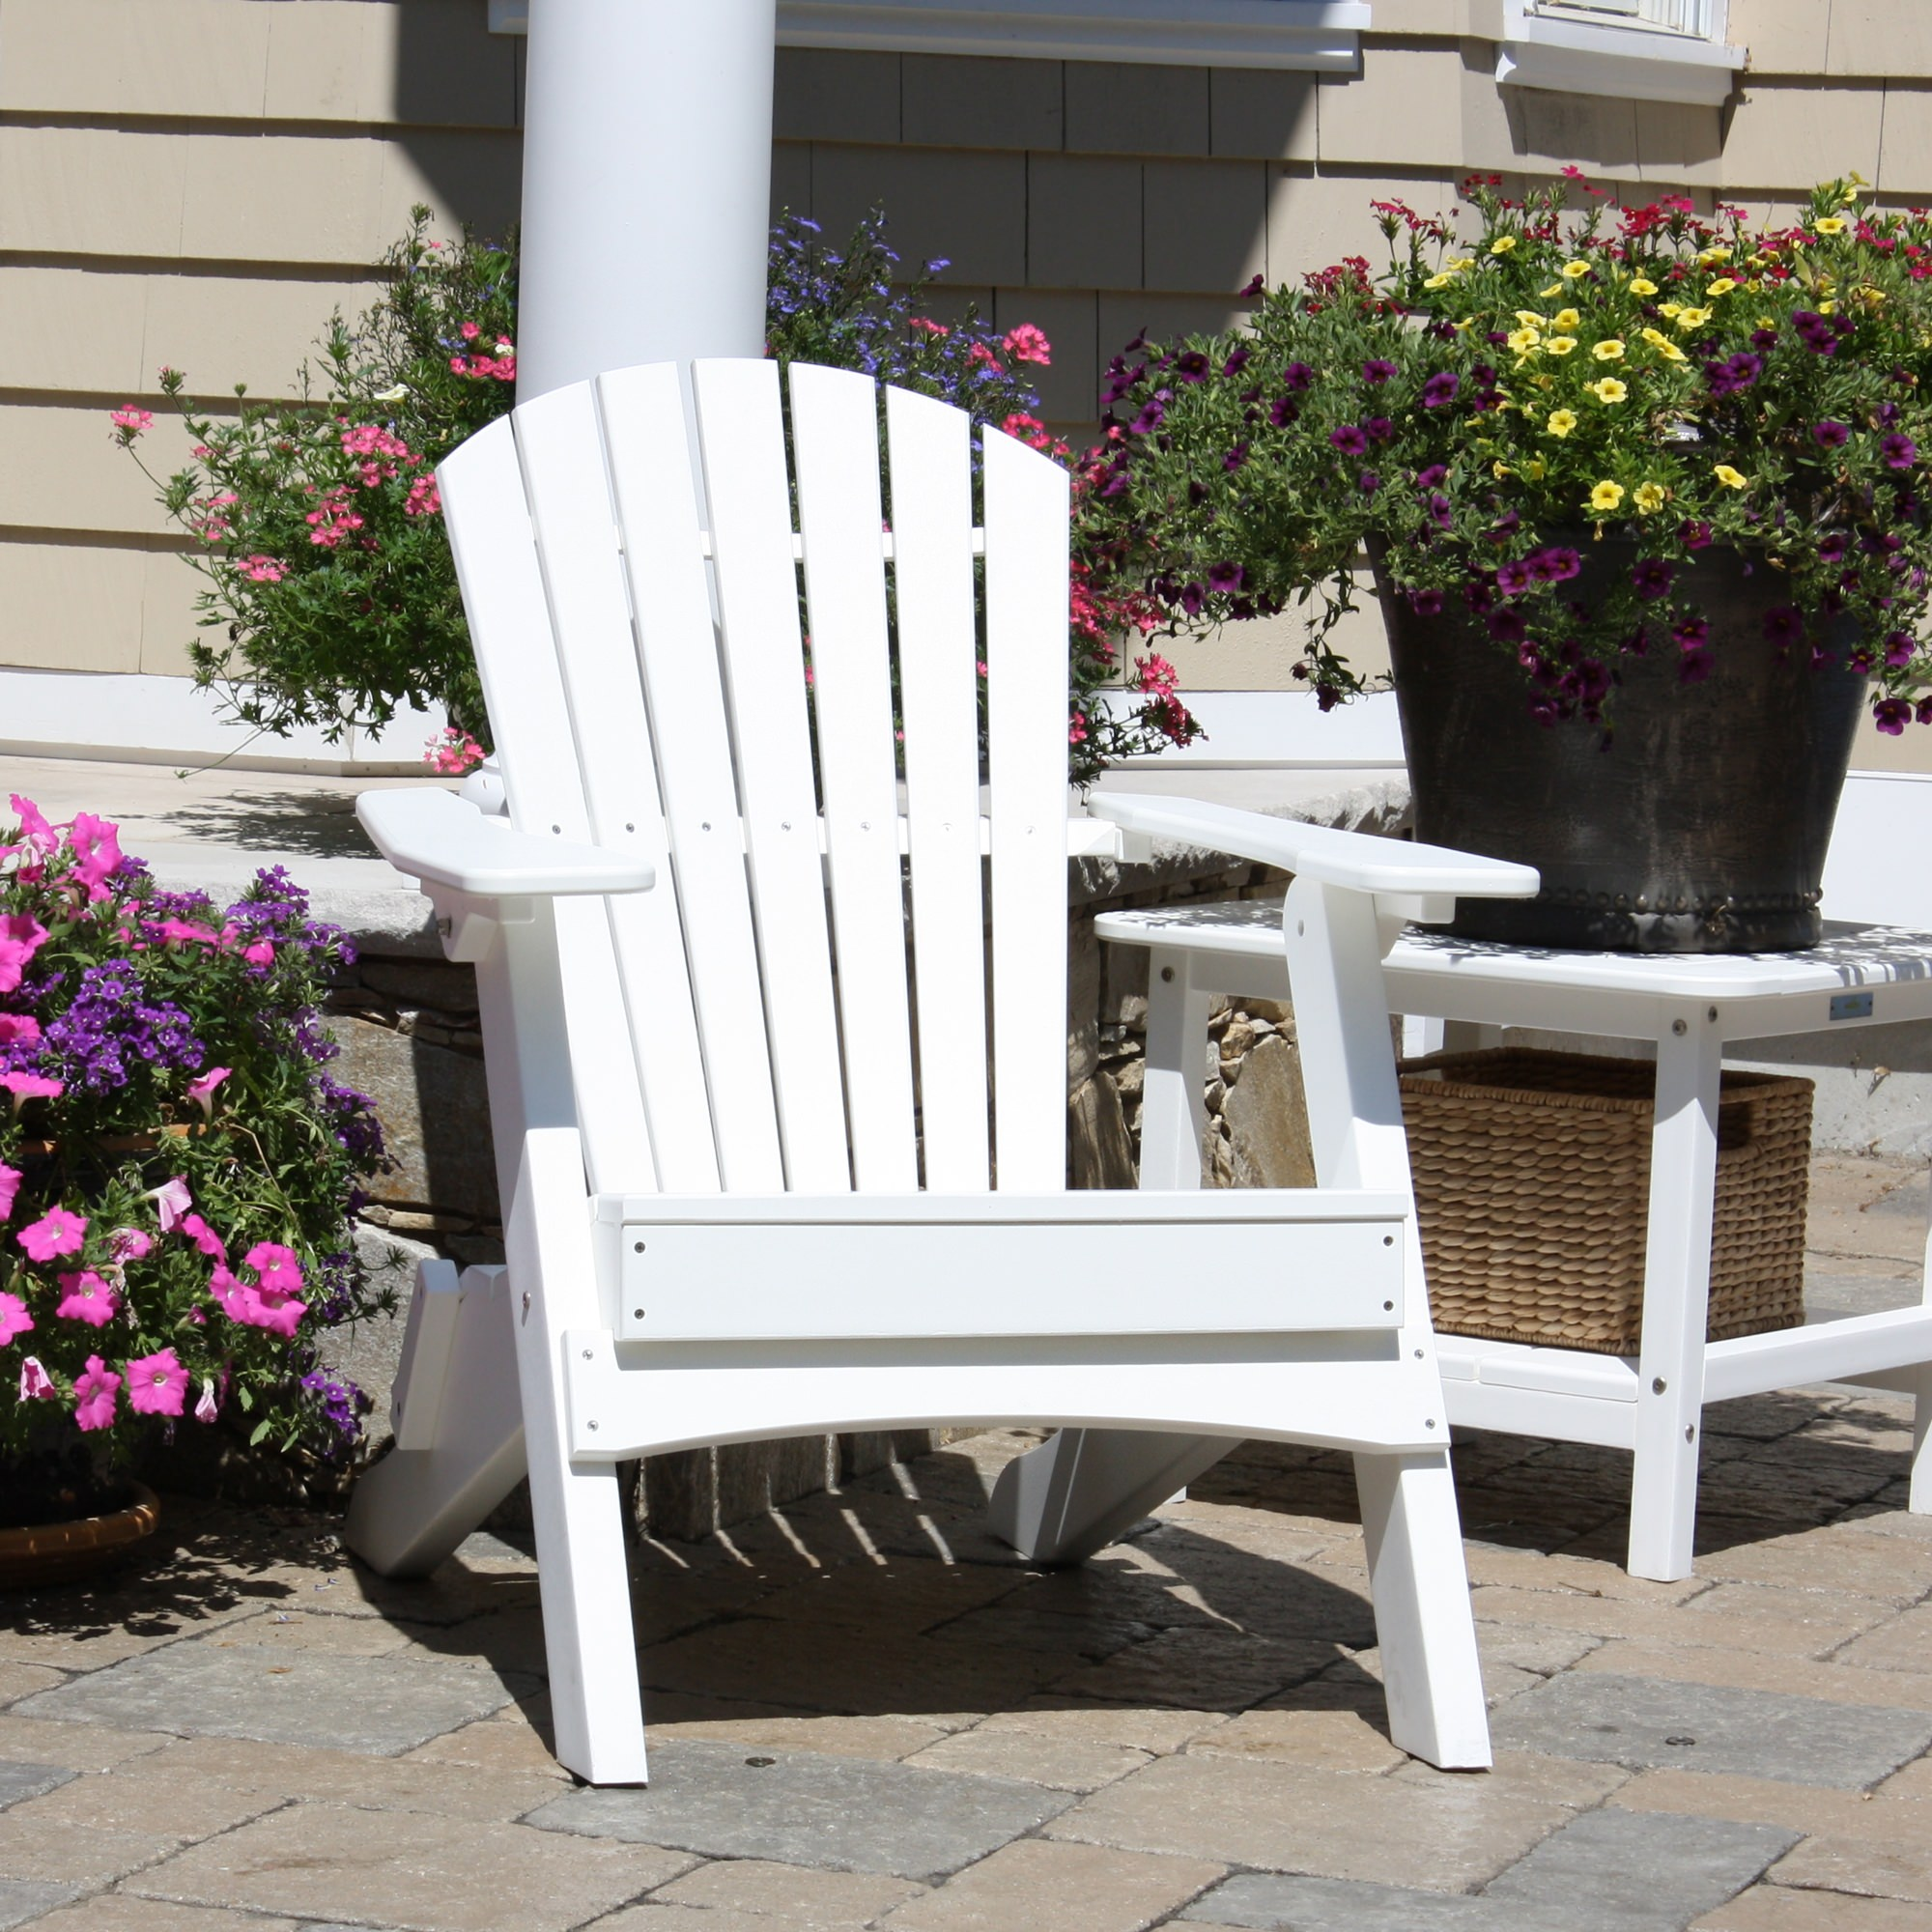 Poly Lumber Adirondack chairs